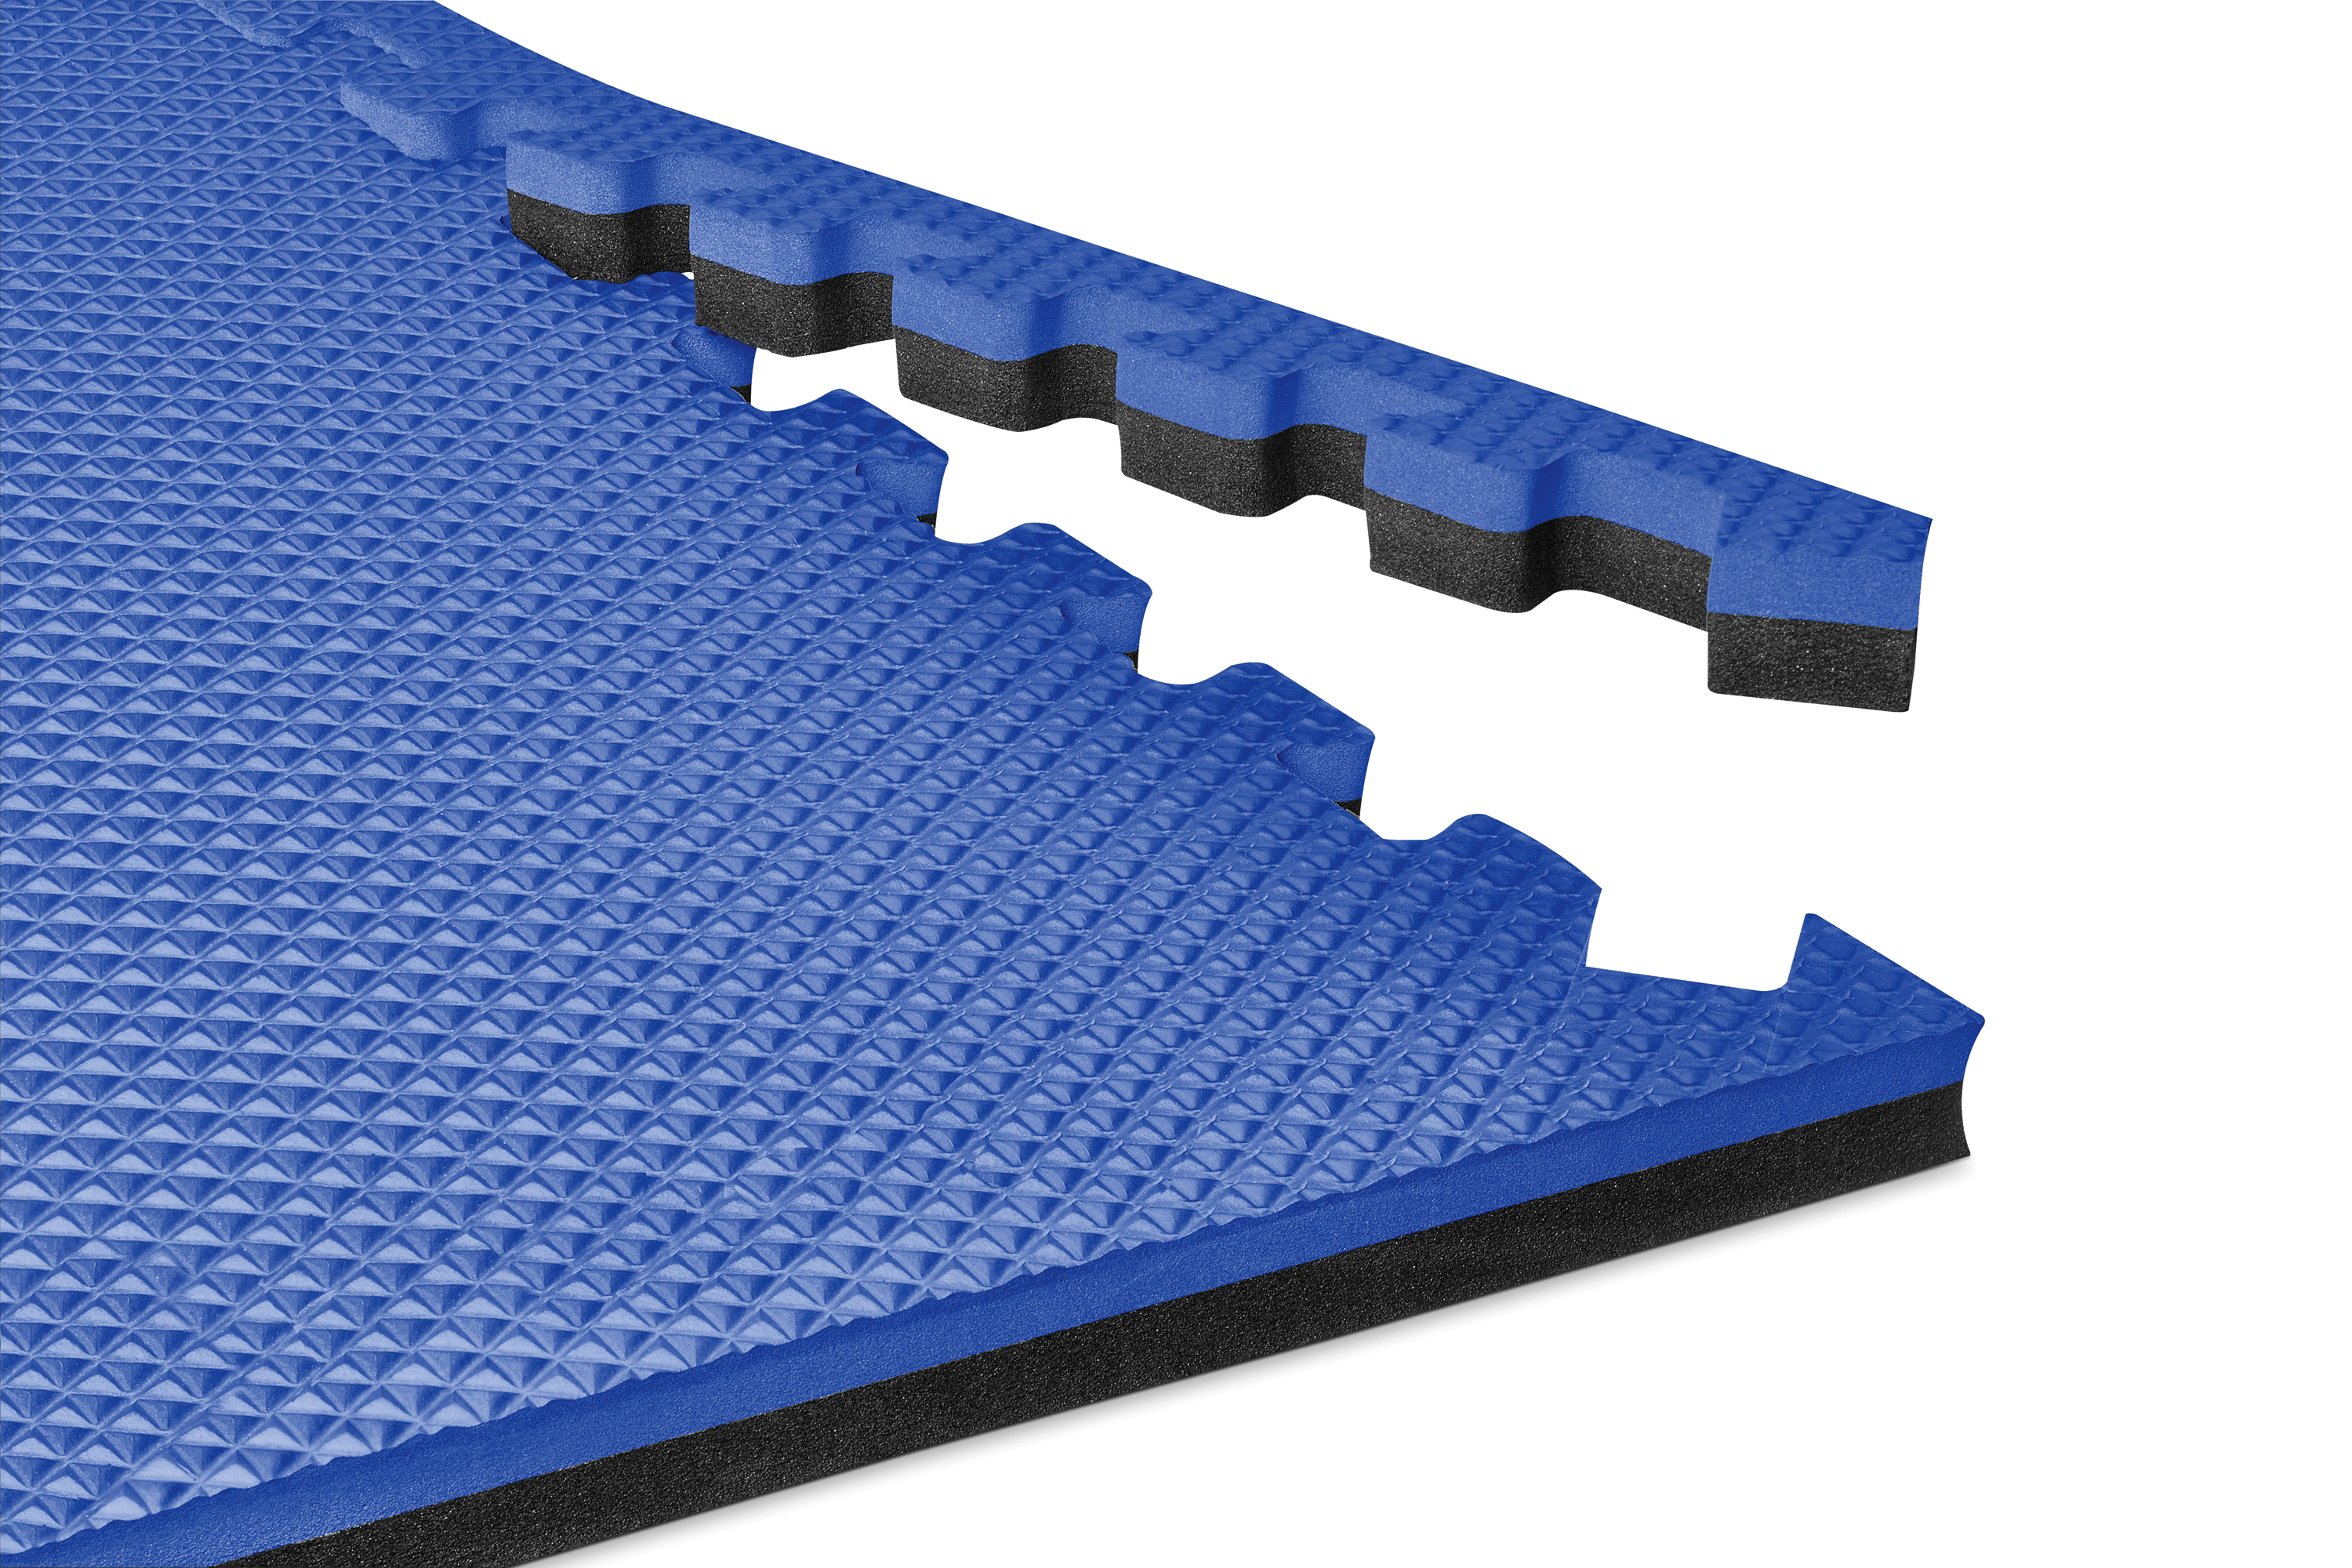 mats b reversible tile new p norsk quick thick floor truly foam interlocking sport view pyramid packs